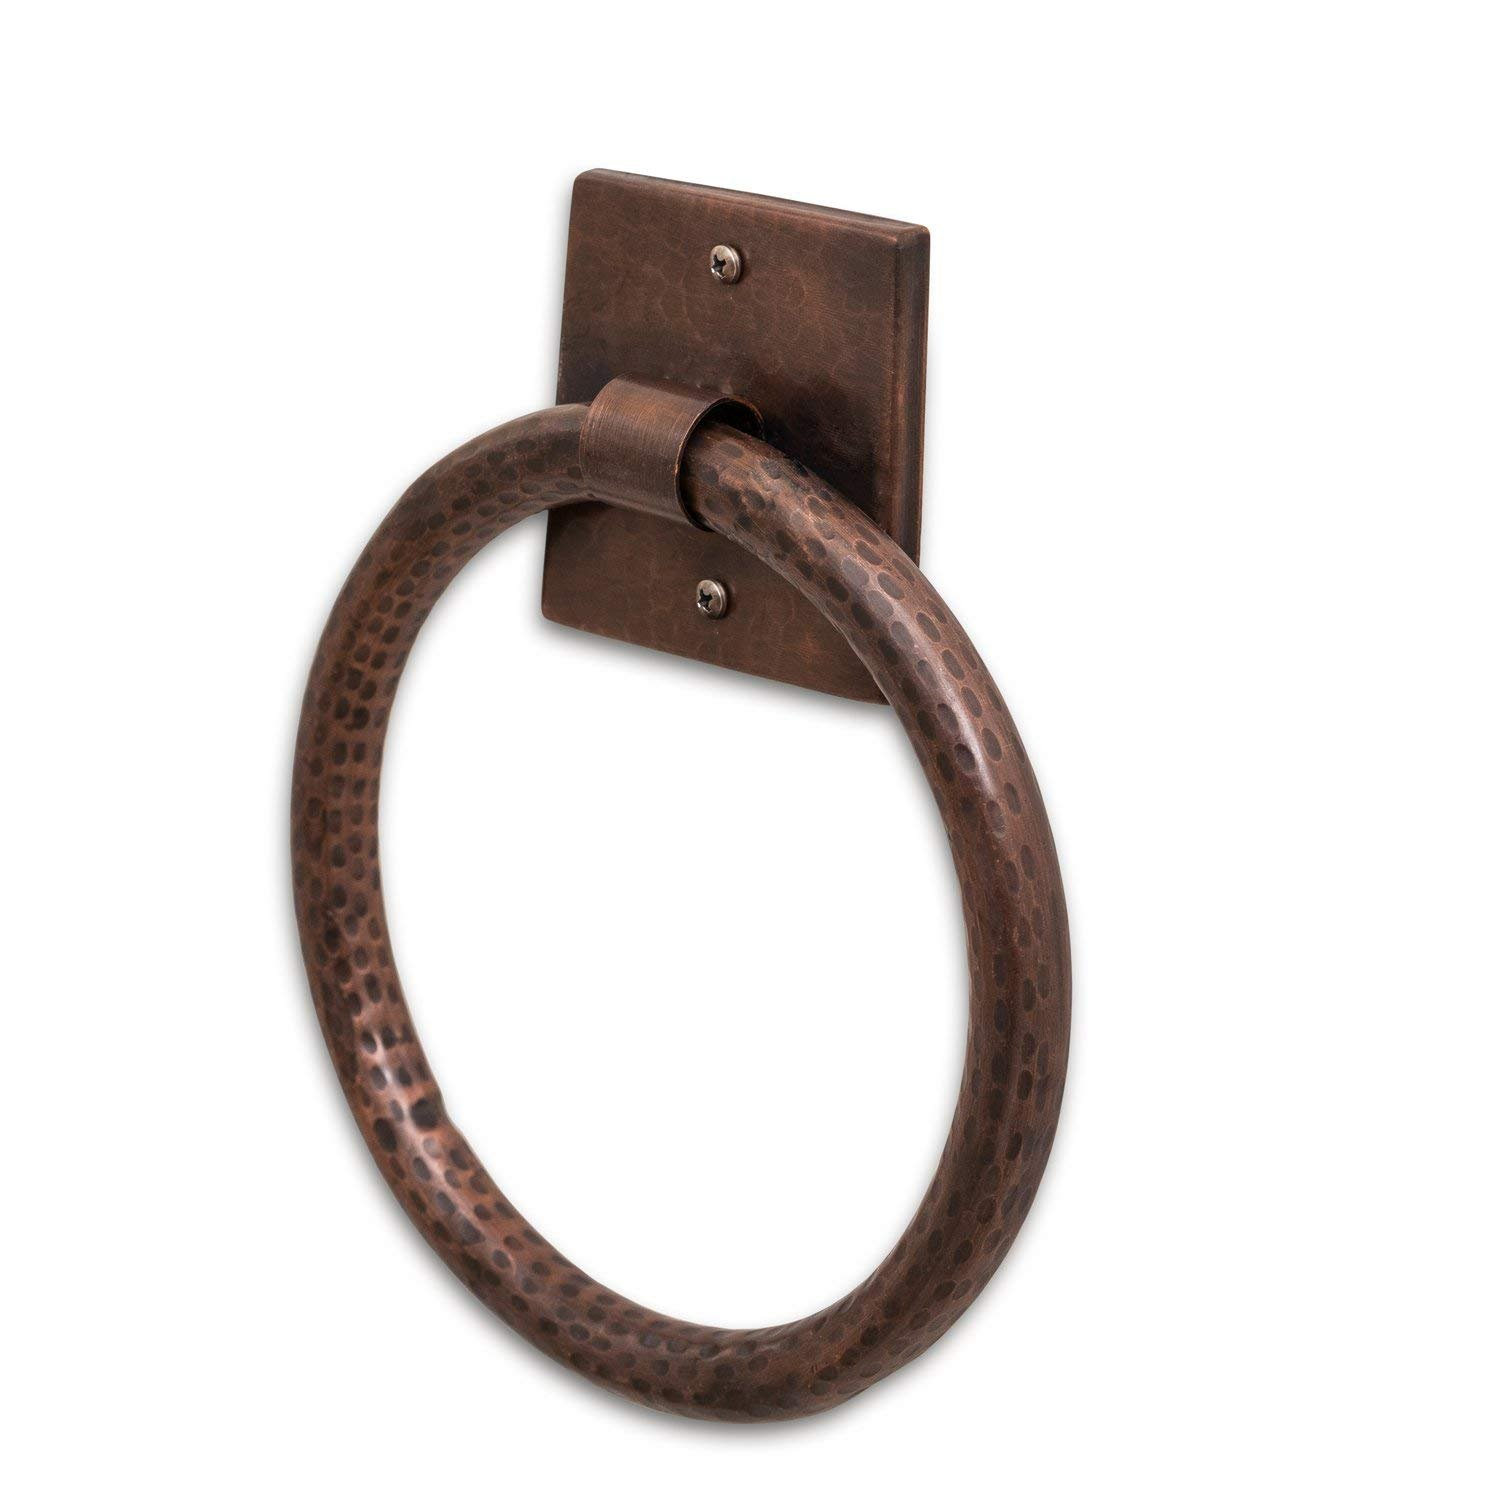 Monarch Abode 17089 Pure Copper Hand Hammered Towel Ring, by Monarch Abode